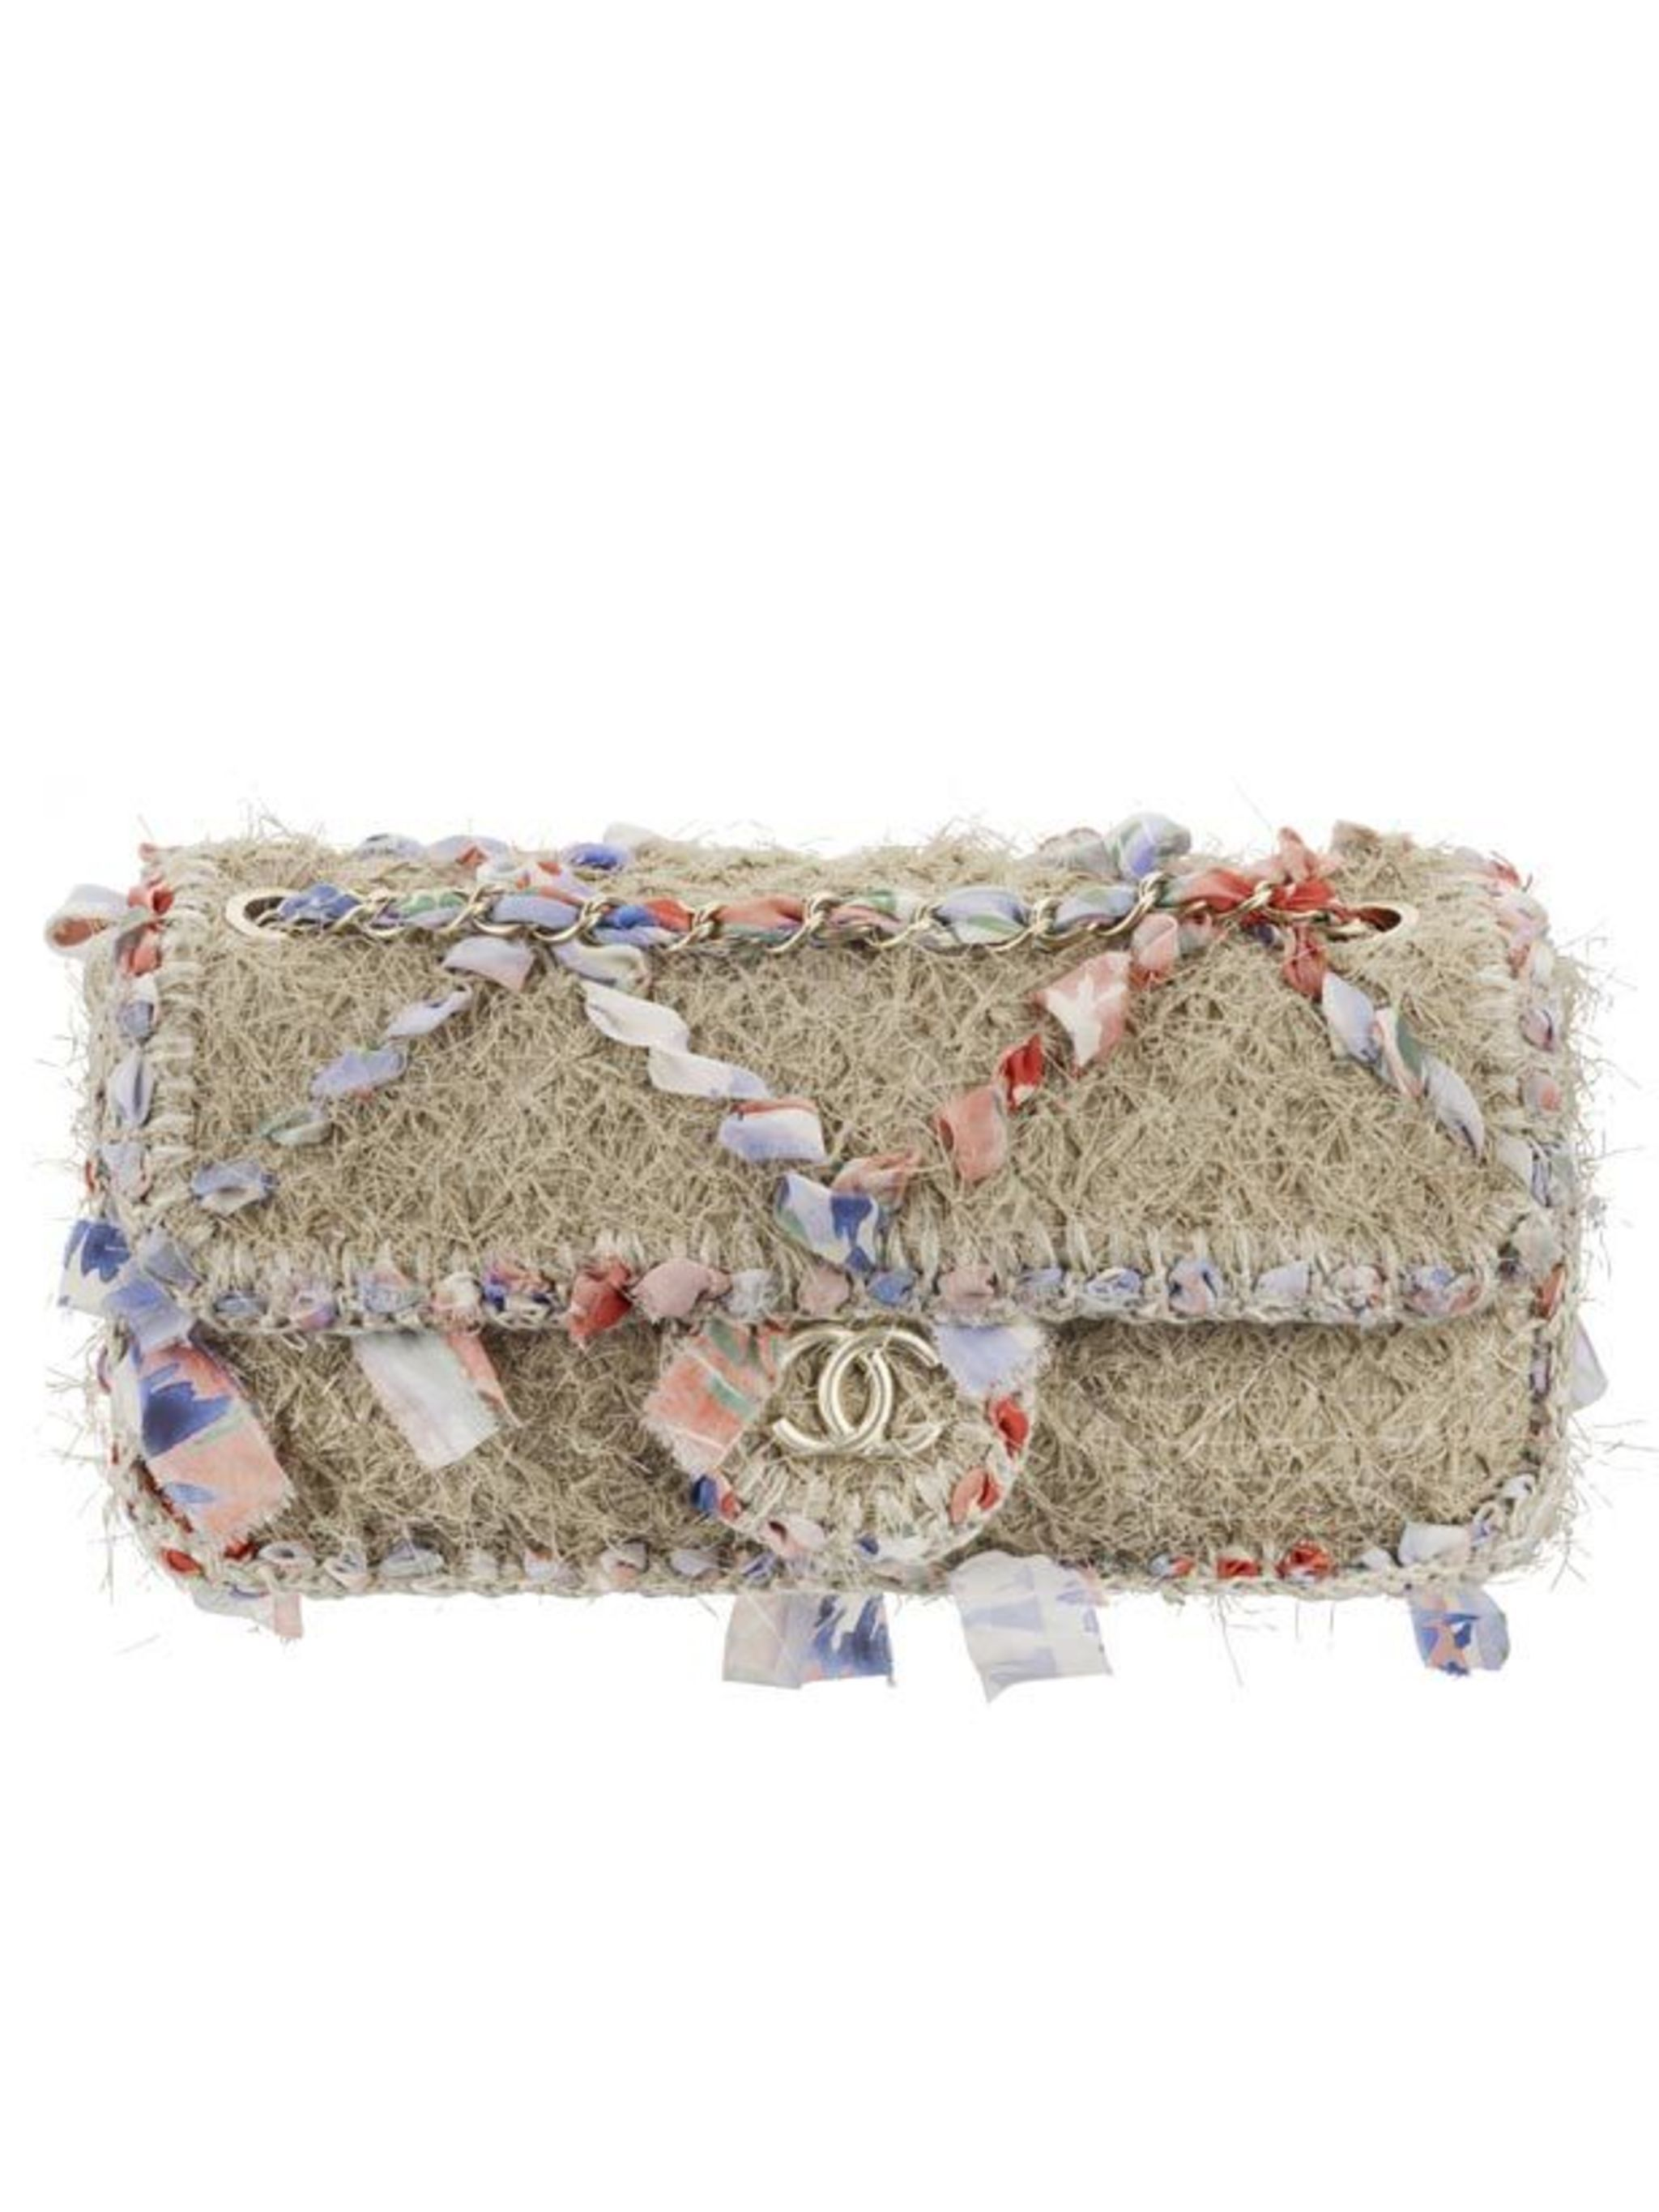 443e0c2a0f1e Chanel bag prices have gone up